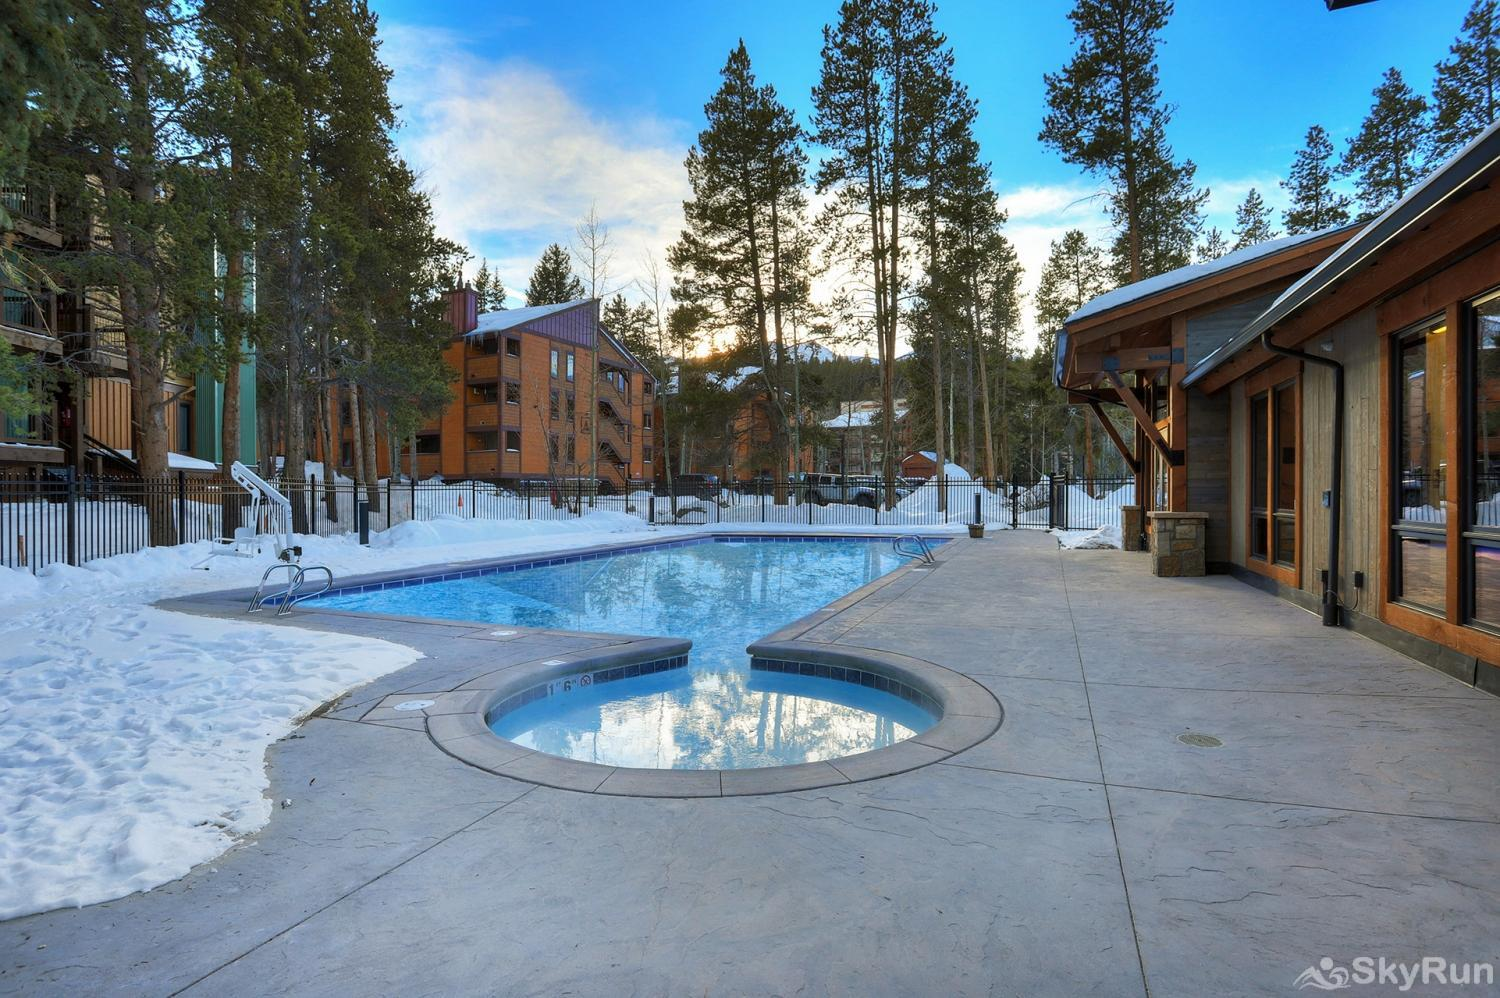 The Lift B8 Outdoor heated pool and hot tubs at the Columbine Pool Complex